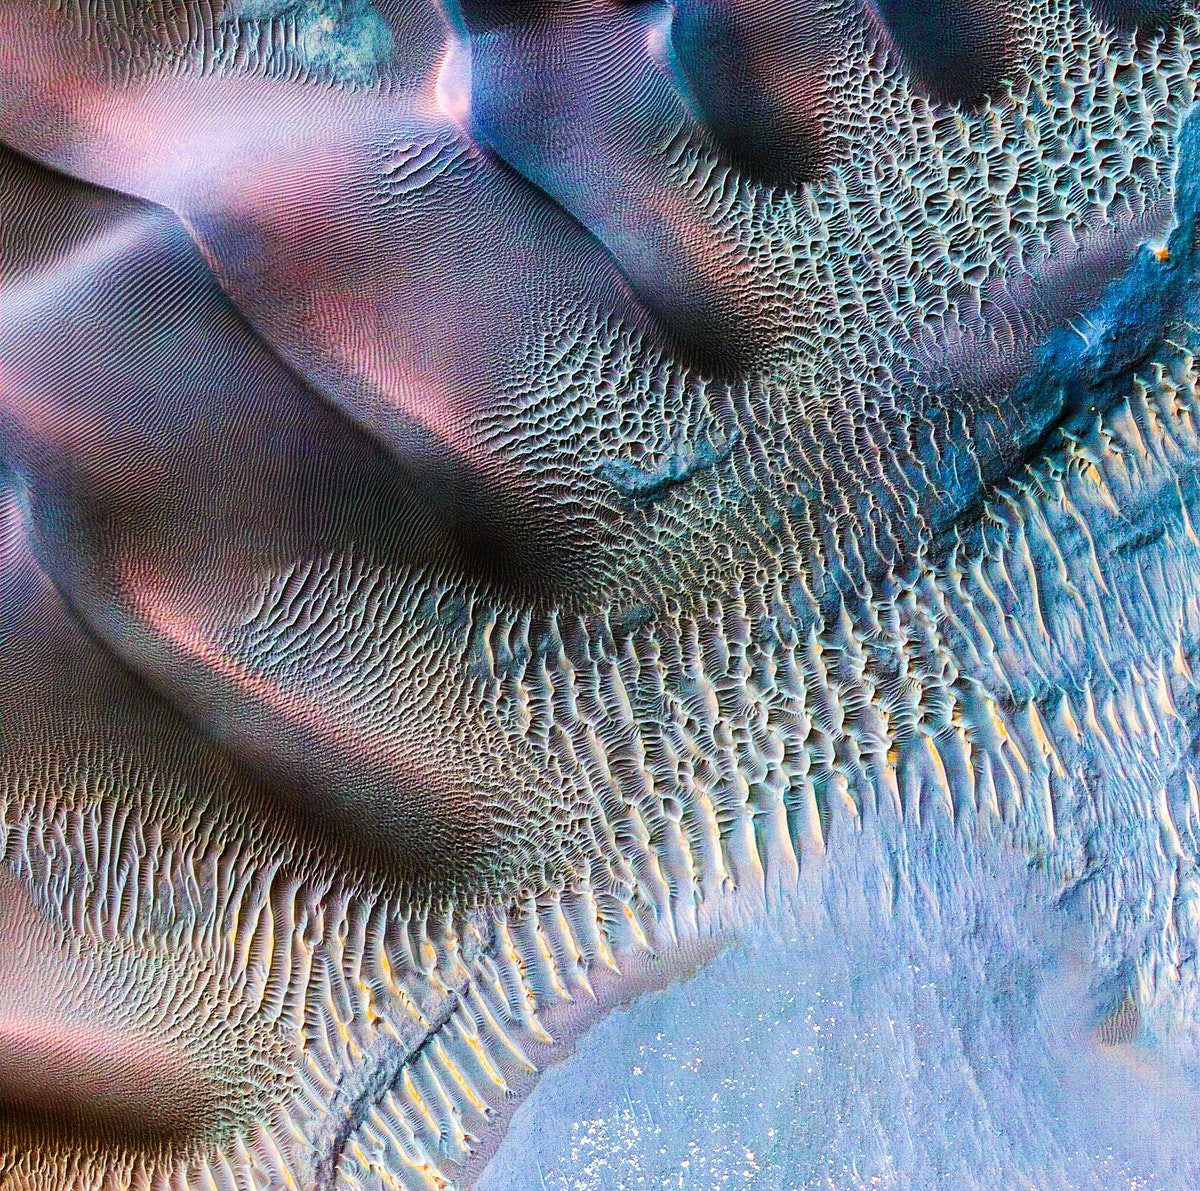 Sand dunes trapped in an impact crater in Noachis Terra, Mars. Original from NASA. Digitally enhanced by rawpixel.